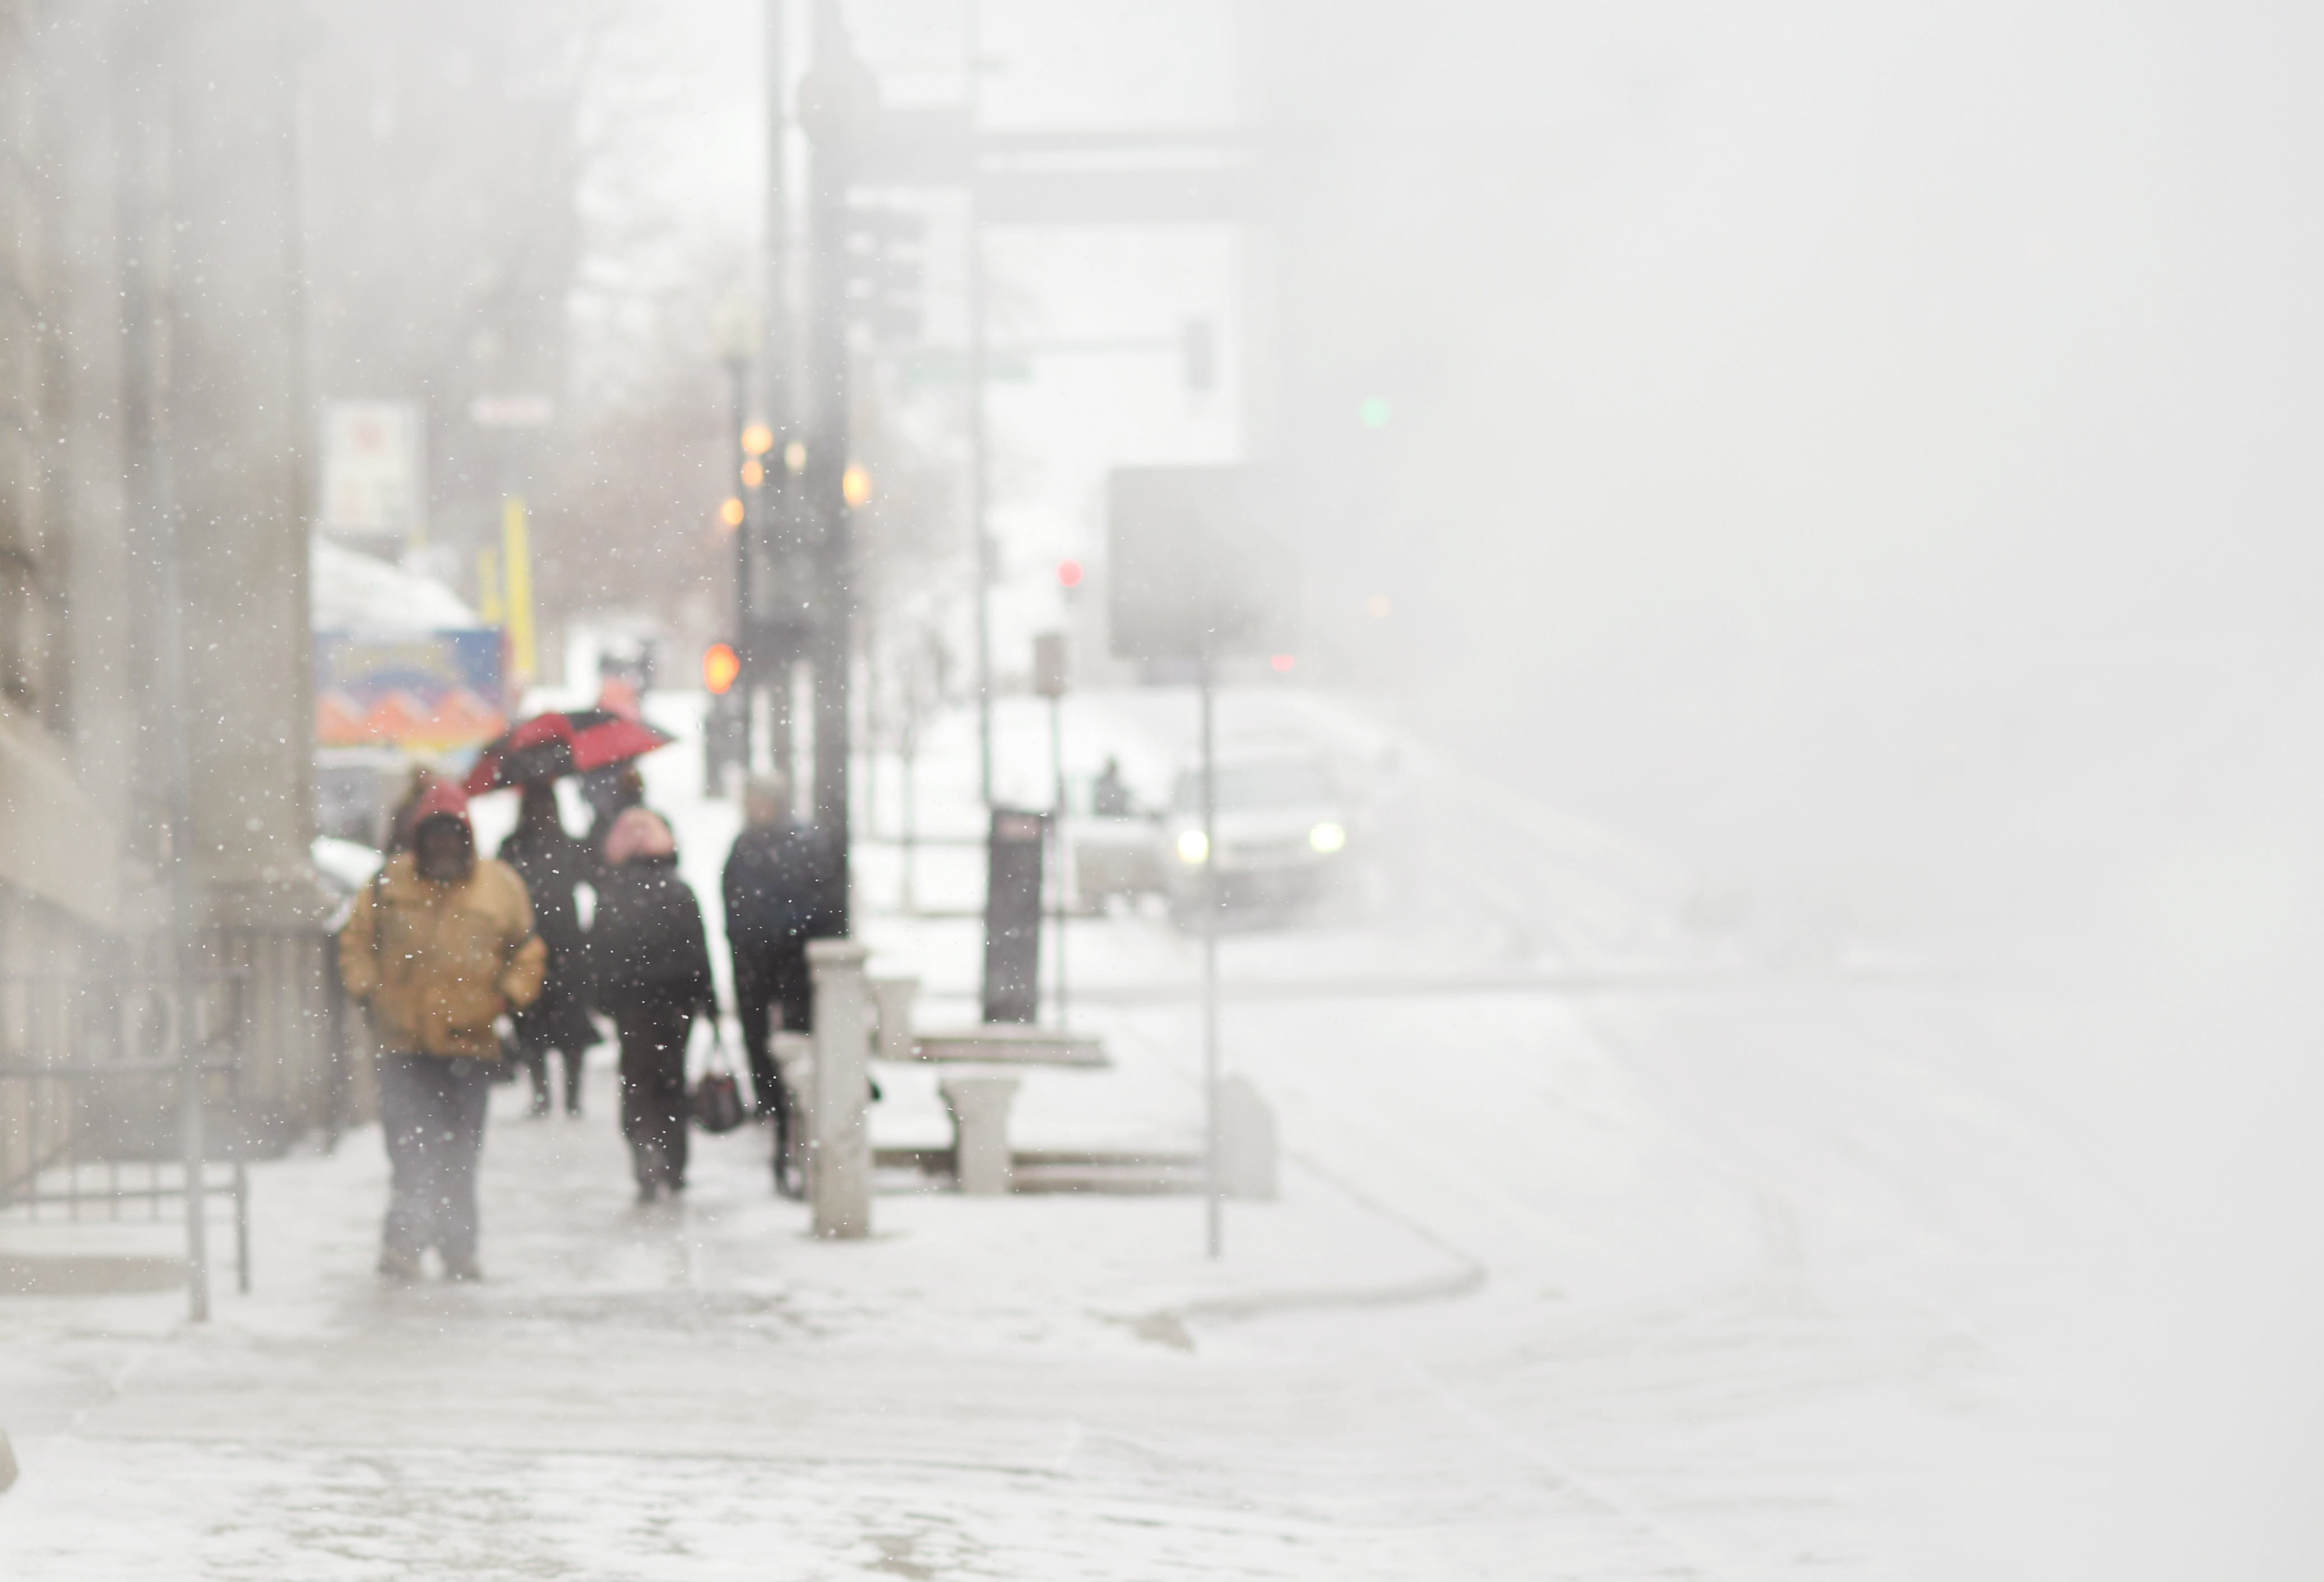 People walk down 16th Street, covered in steam, in Denver, on Wedesday.(credit: RJ Sangosti/The Denver Post via Getty Images)